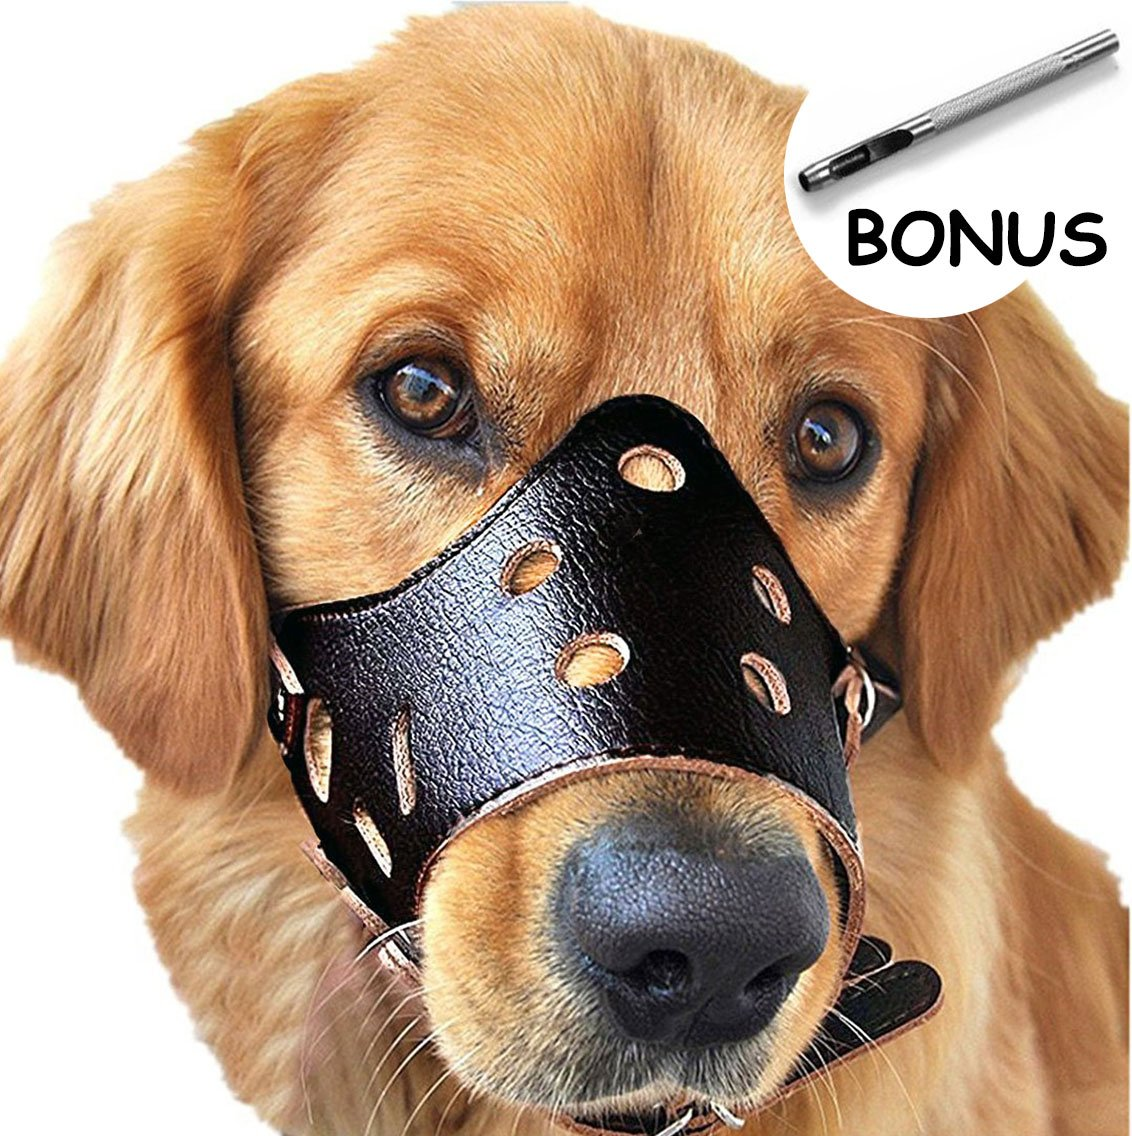 Dog Muzzle Leather, Comfort Secure Anti-barking Muzzles for Dog, Breathable and Adjustable, Allows Dringking and Eating, Used with Collars (L, Black)